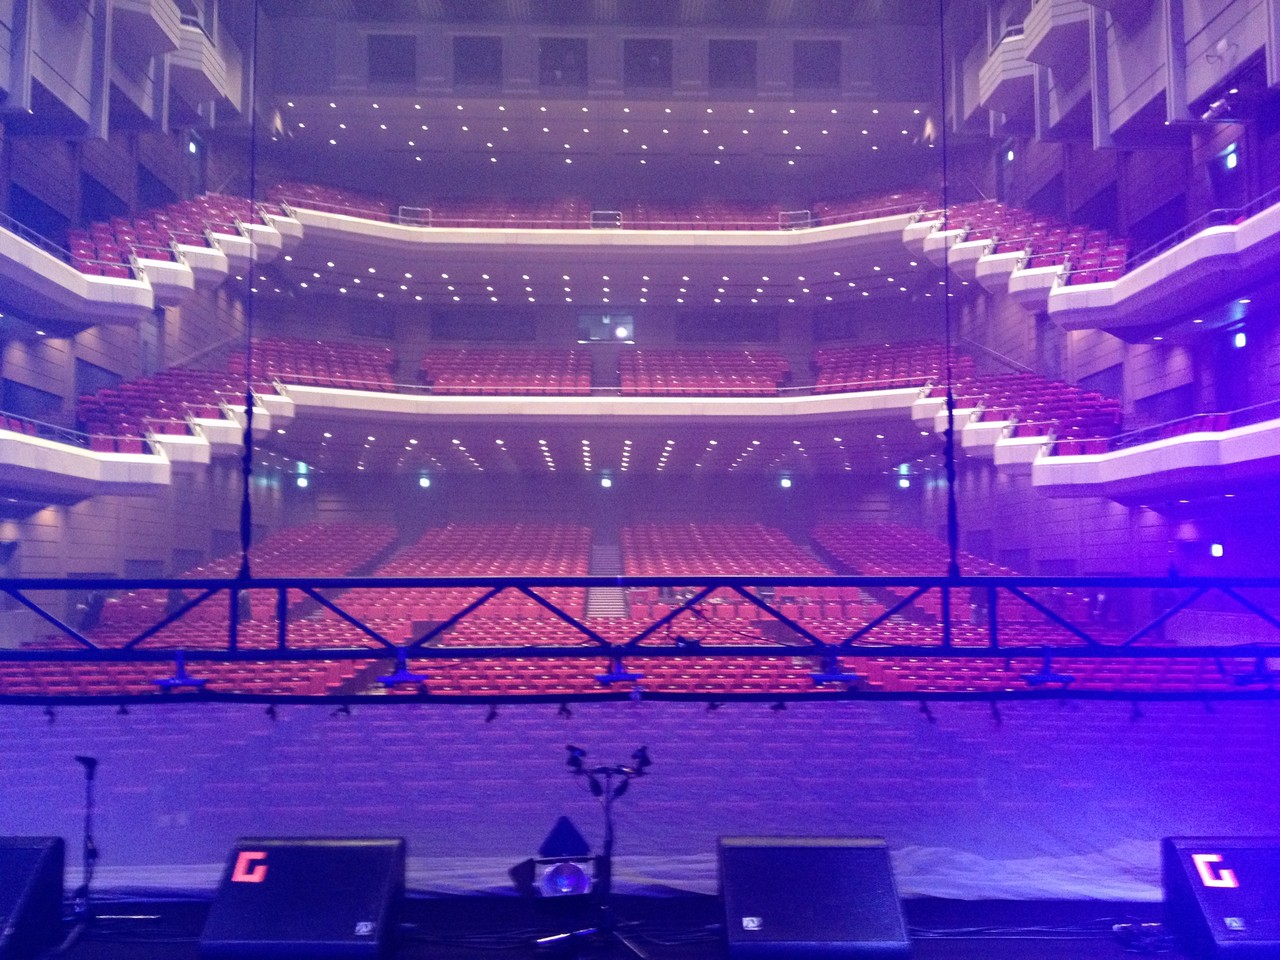 Second show at the Orchard Hall and we sound check again .. — at Orchard Hall Shibuya.